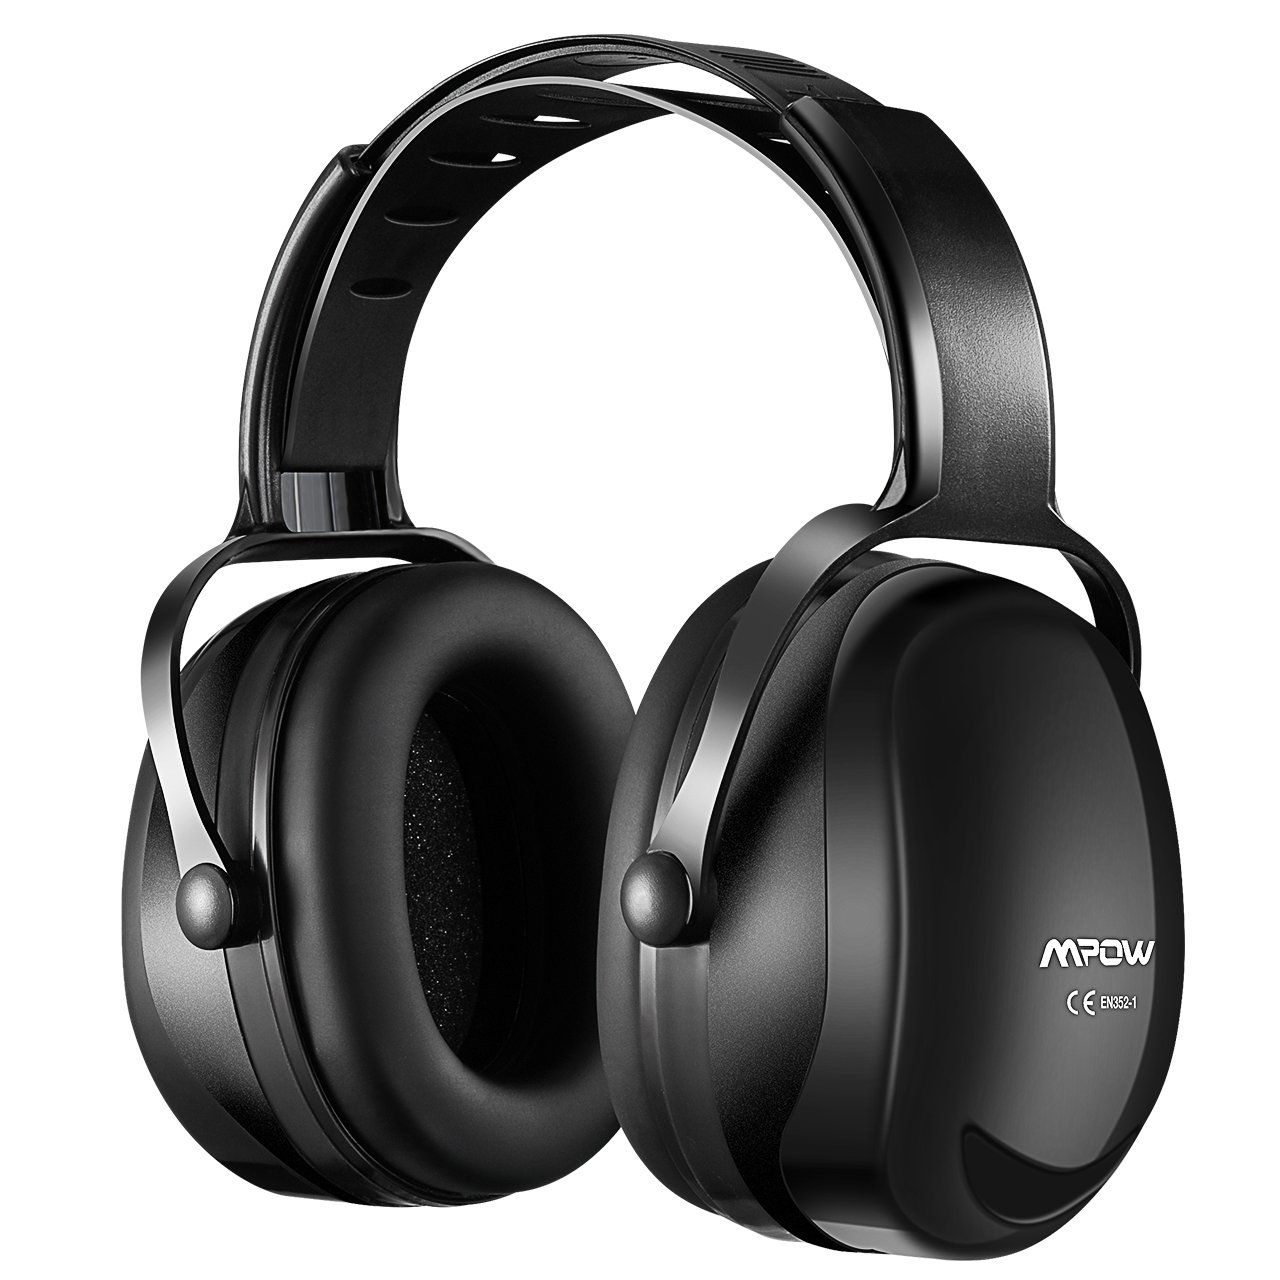 Mpow [Upgraded] Noise Reduction Safety Ear Muffs, SNR 36dB Shooting Hunting Muffs, Hearing Protection with a Carrying Bag, Ear Defenders Fits Adults To Kids with Twist Resistant Headband- Black by Mpow